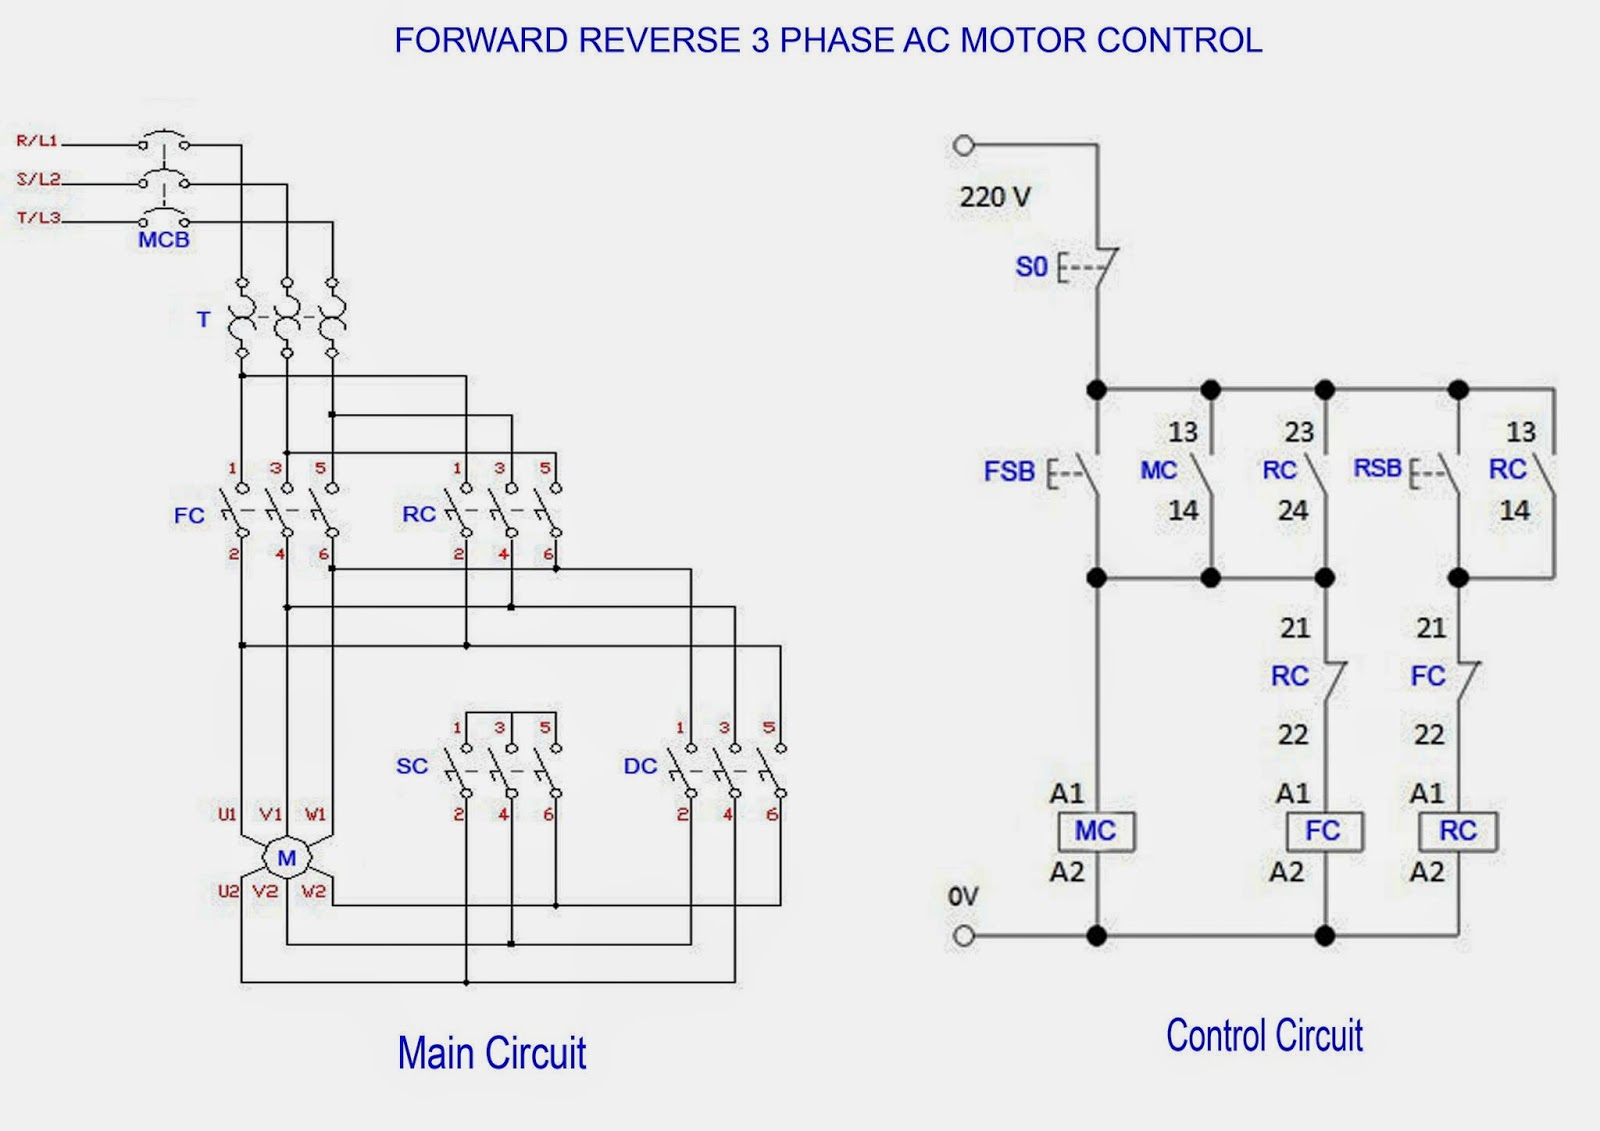 Submersible Pump Wiring Diagram | Wiring Diagram on socapex 19 pin 208v diagram, 220 volt wiring diagram, 208v plug wiring diagram, hydraulic wiring diagram, 3 wire plug wiring diagram, motor wiring diagram, 3 phase power diagram, capacitors for compressor wiring diagram, fire alarm control panel wiring diagram, 230v wire color, 240 volt wiring diagram, fire alarm addressable system wiring diagram, electric hot water tank wiring diagram, class 2 transformer wiring diagram, 208 volt wiring diagram, pool pump 230 volt wiring diagram, window unit air conditioner wiring diagram, 220 plug wiring diagram, air compressor starter wiring diagram, ac wiring diagram,